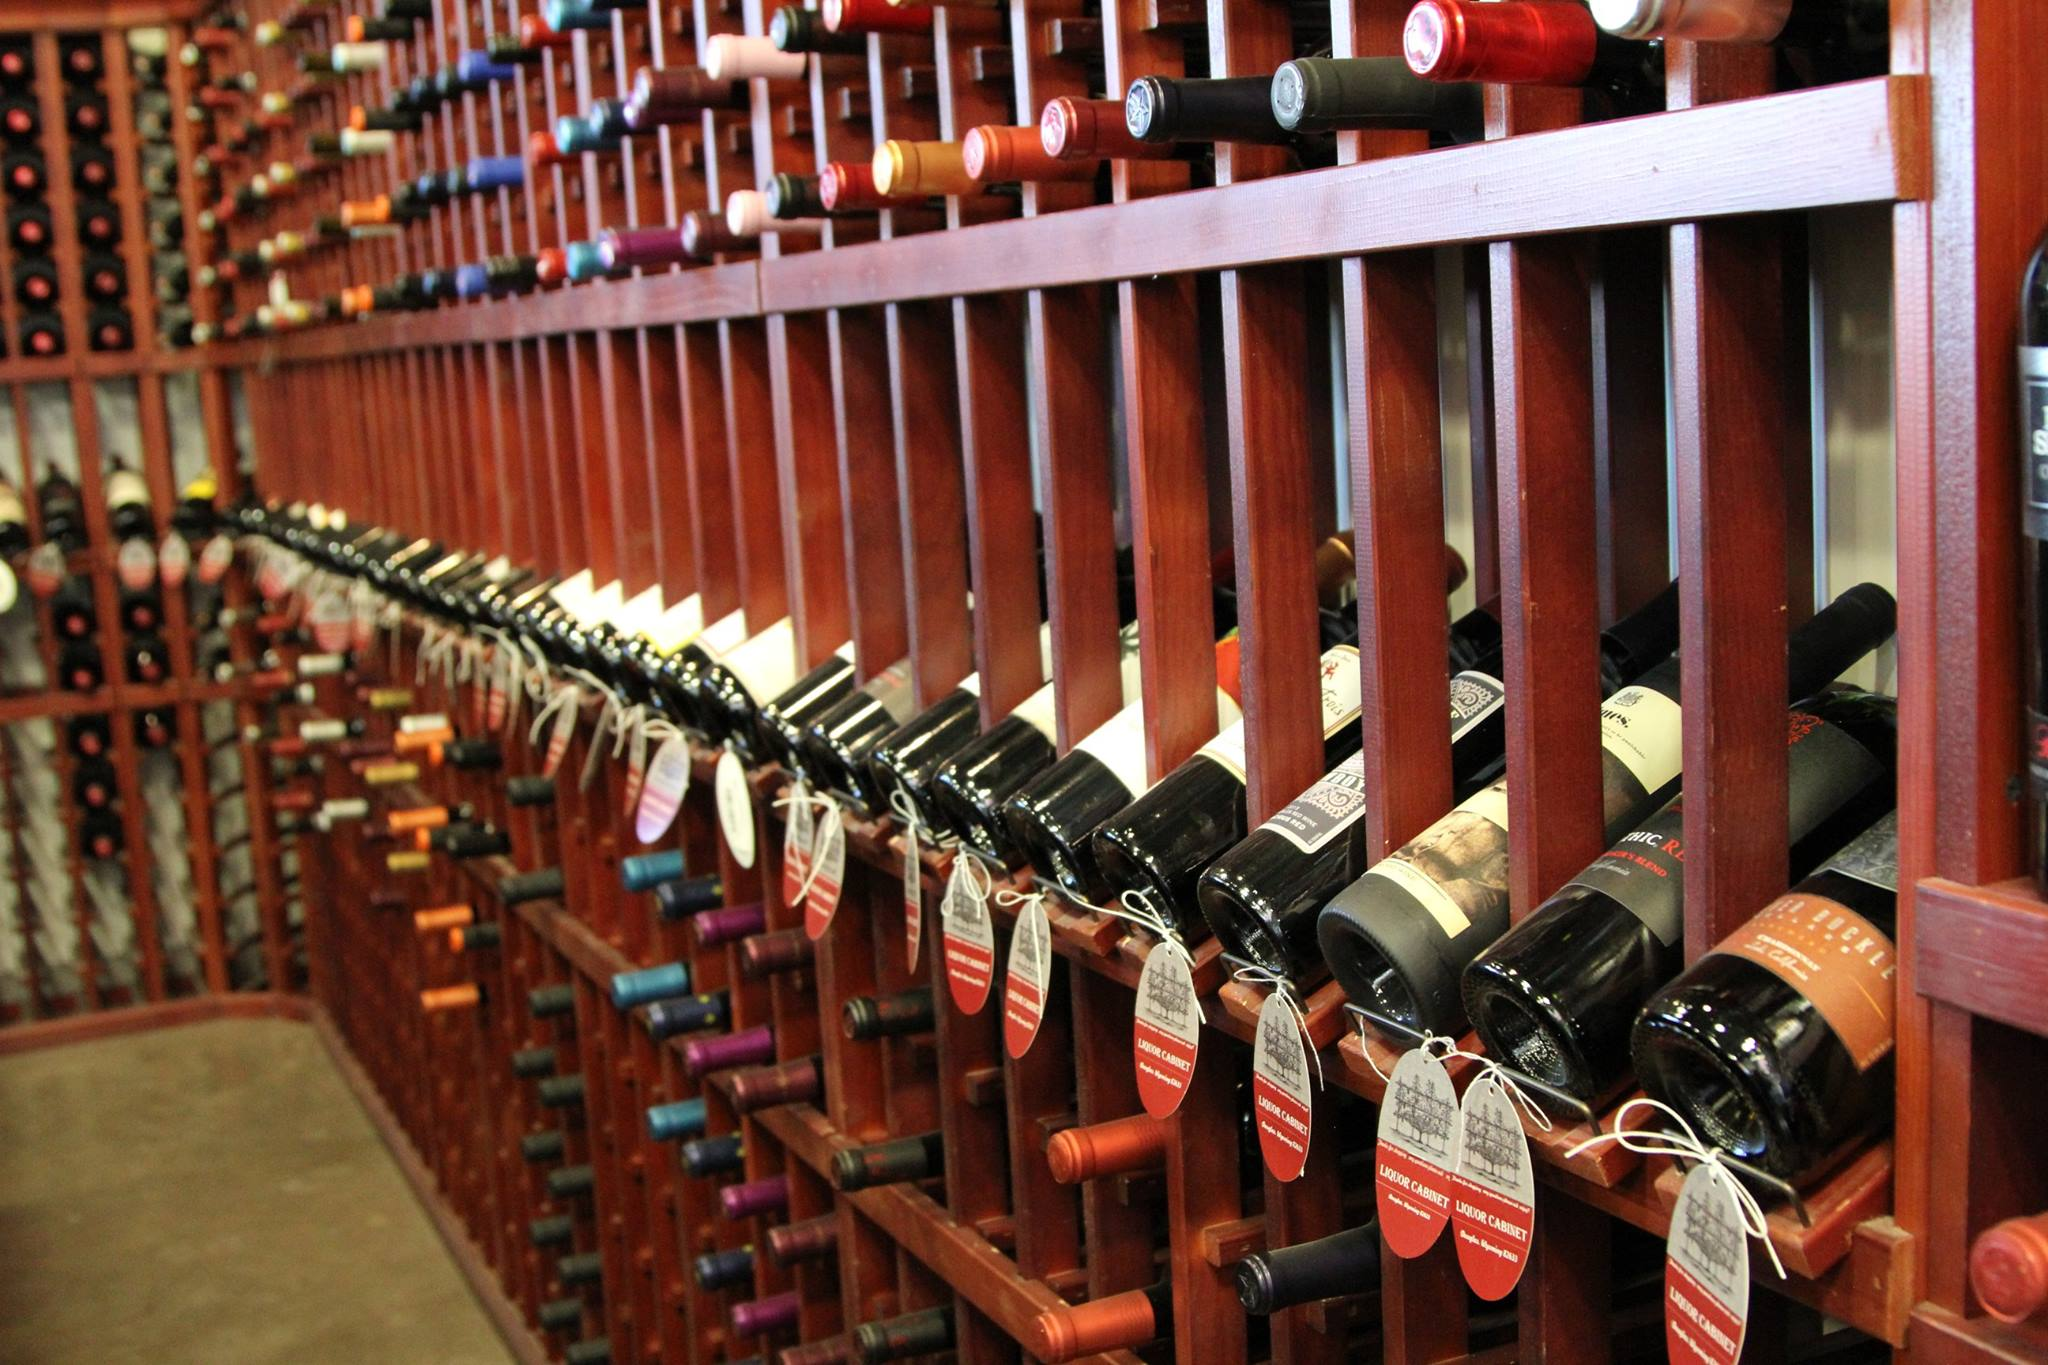 various bottles of wine being stored in wine racks